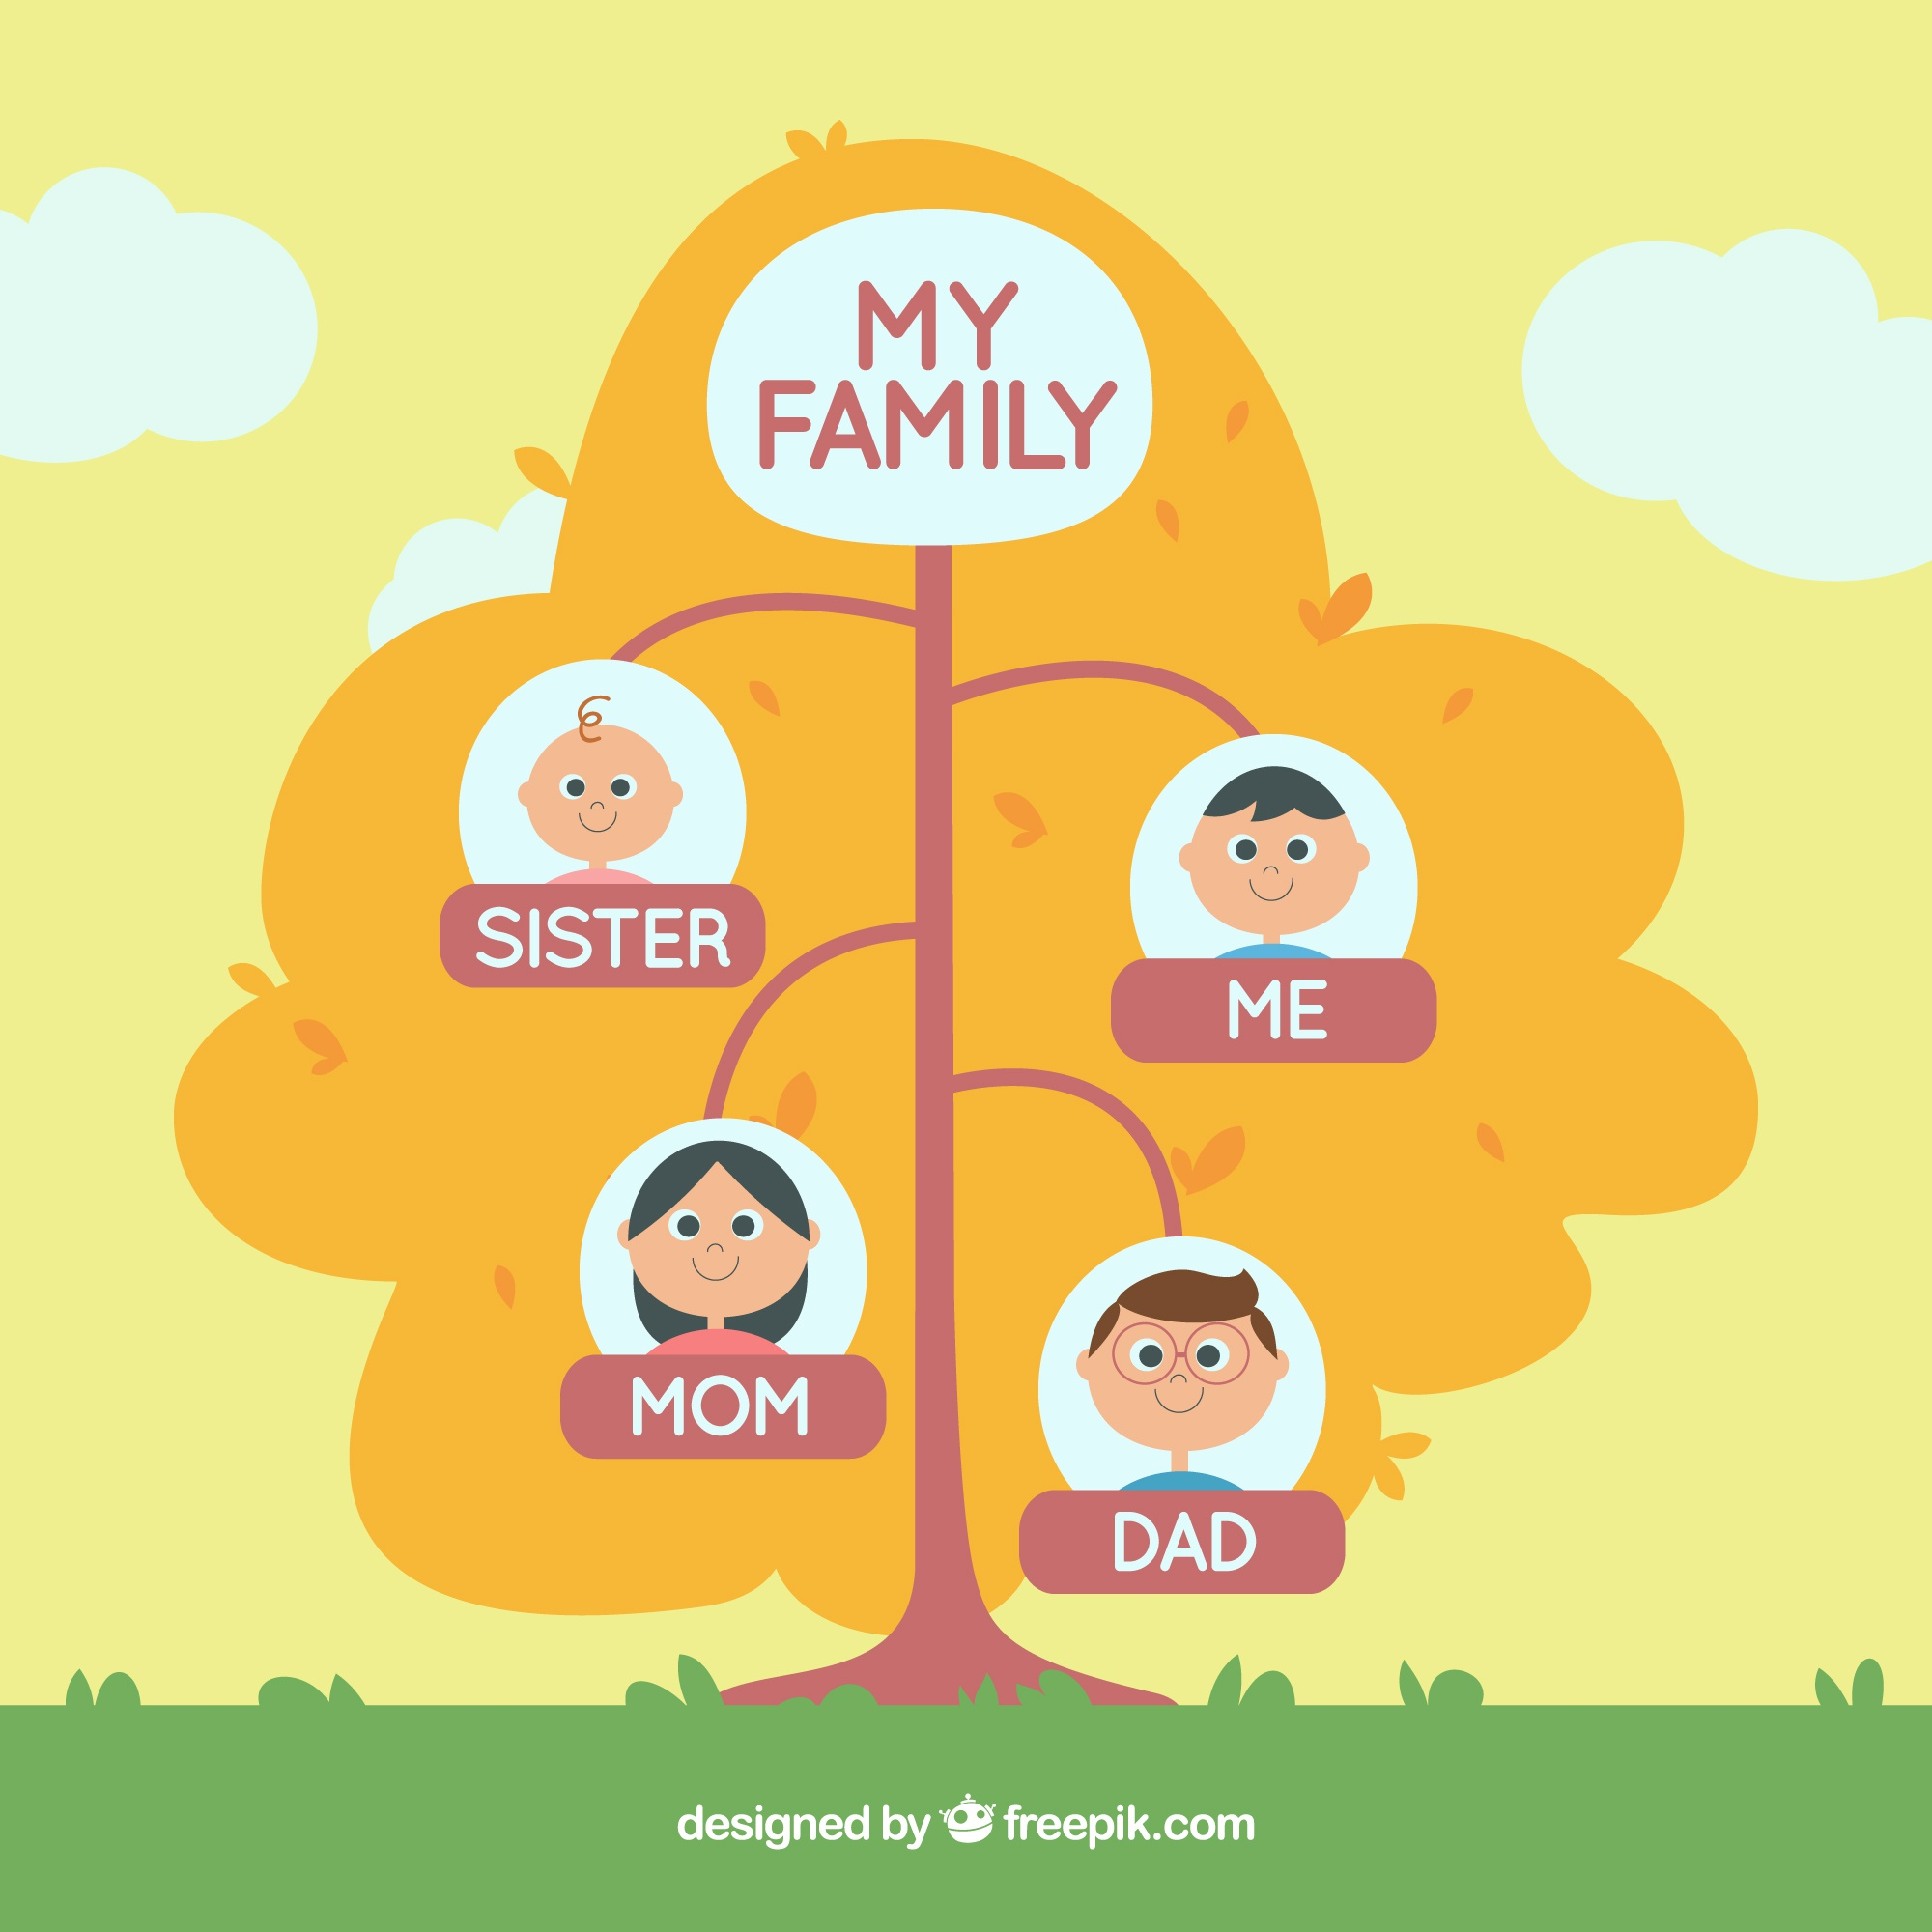 Decorative family tree with two generations